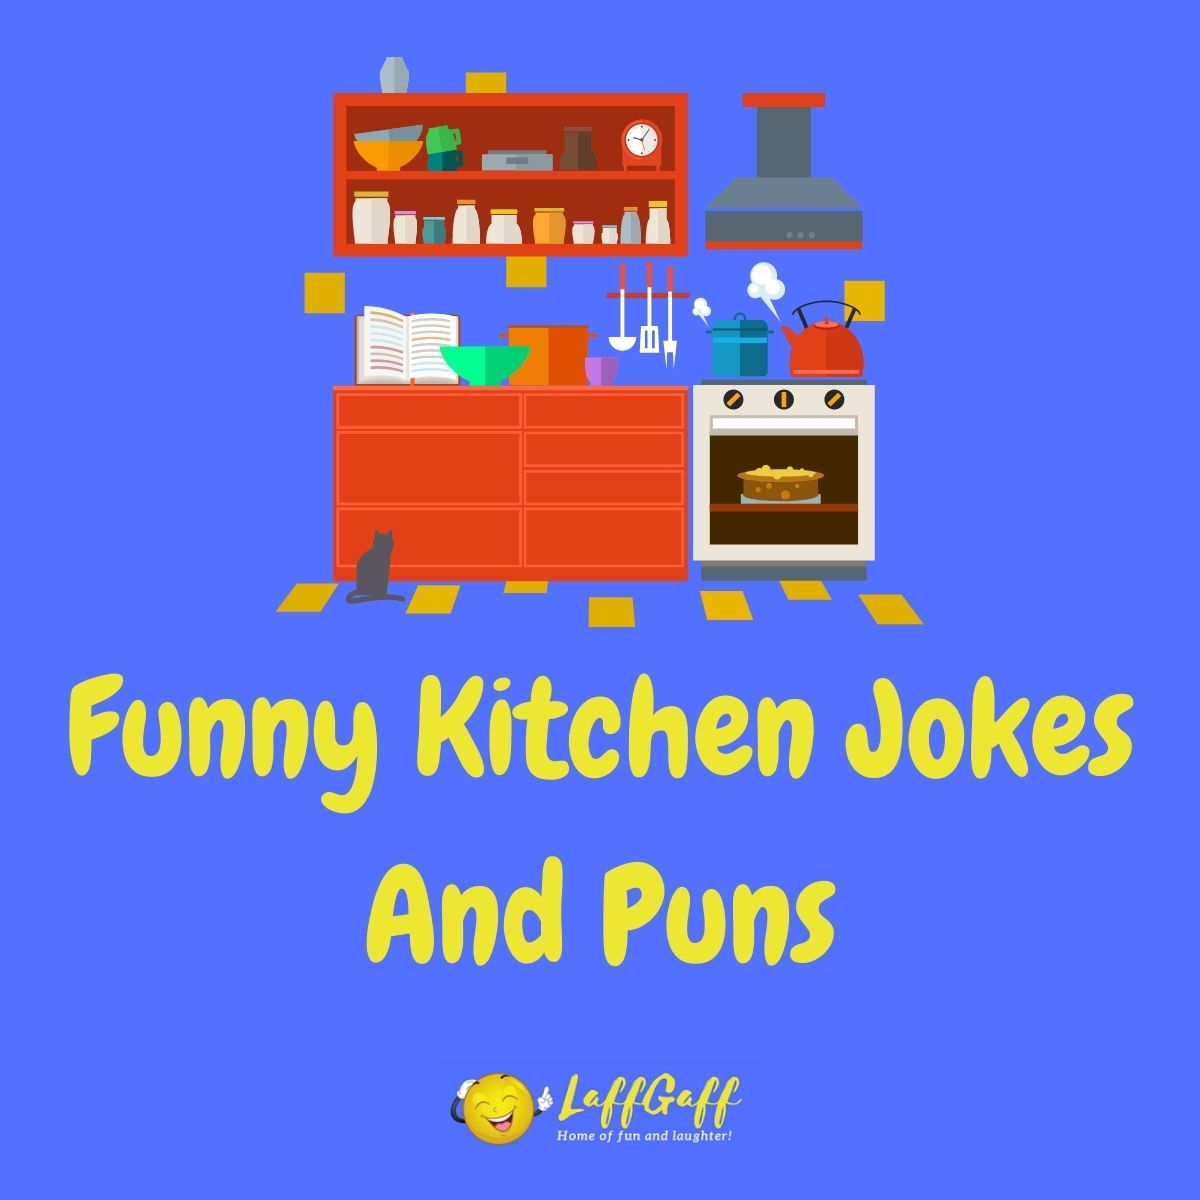 Featured image for a page of funny kitchen jokes and puns.